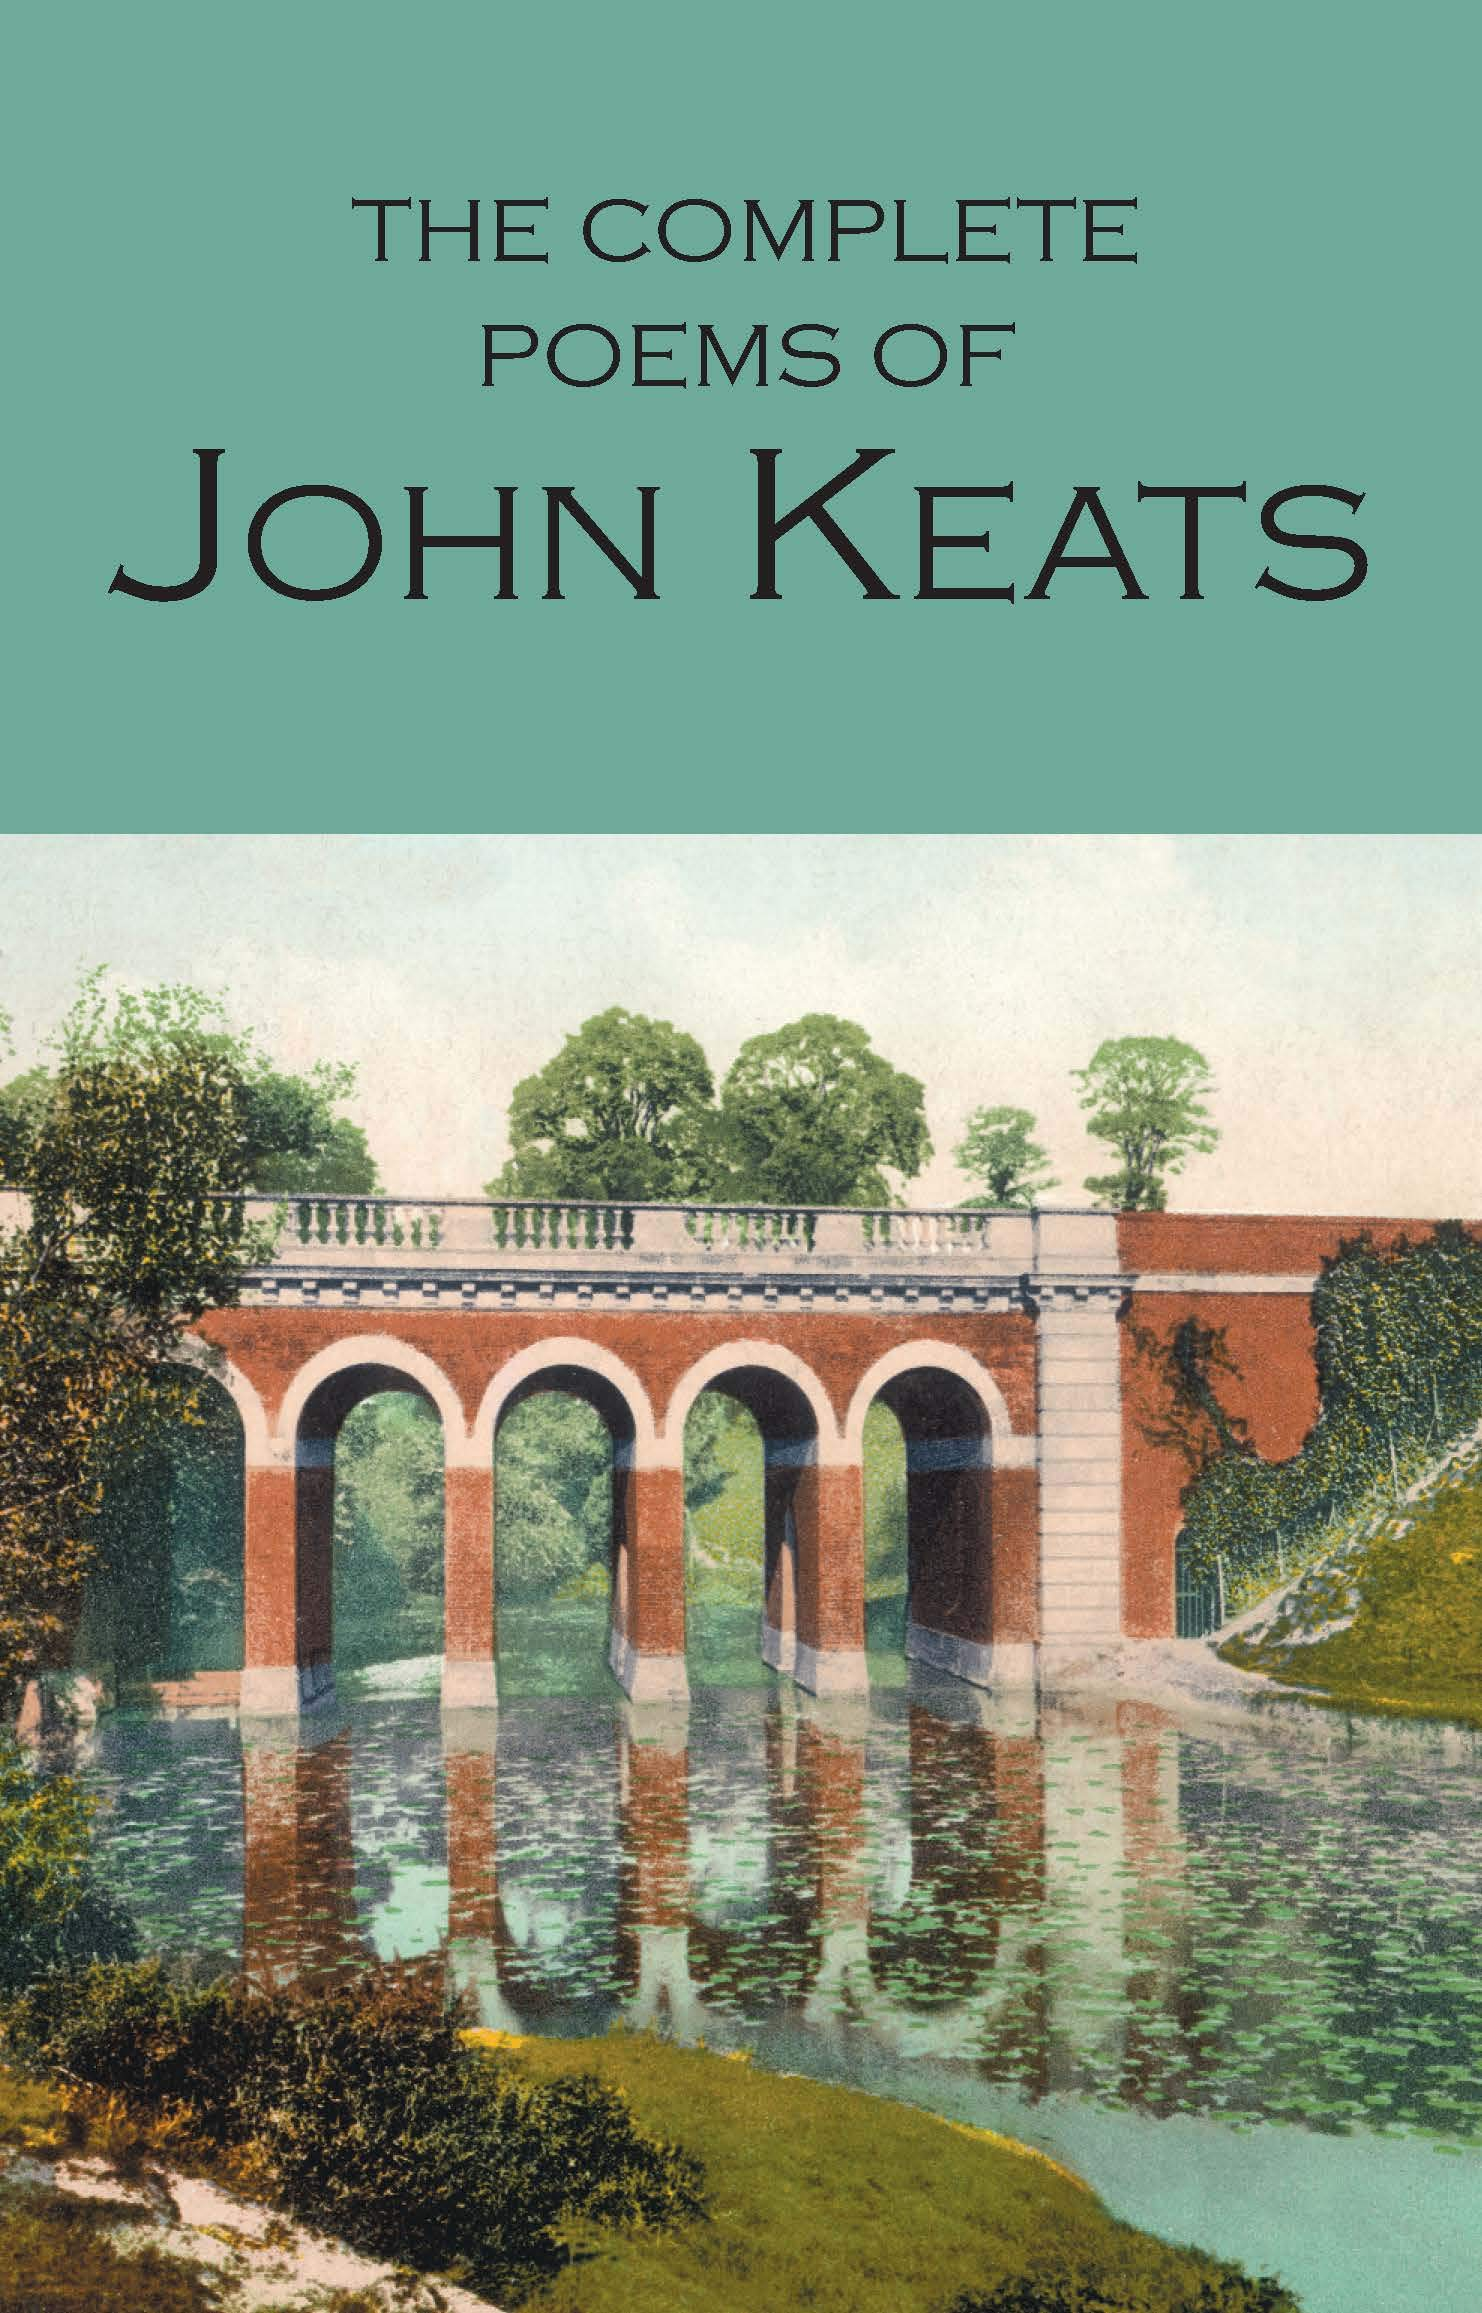 The Complete Poems of John Keats (Wordsworth Collection)